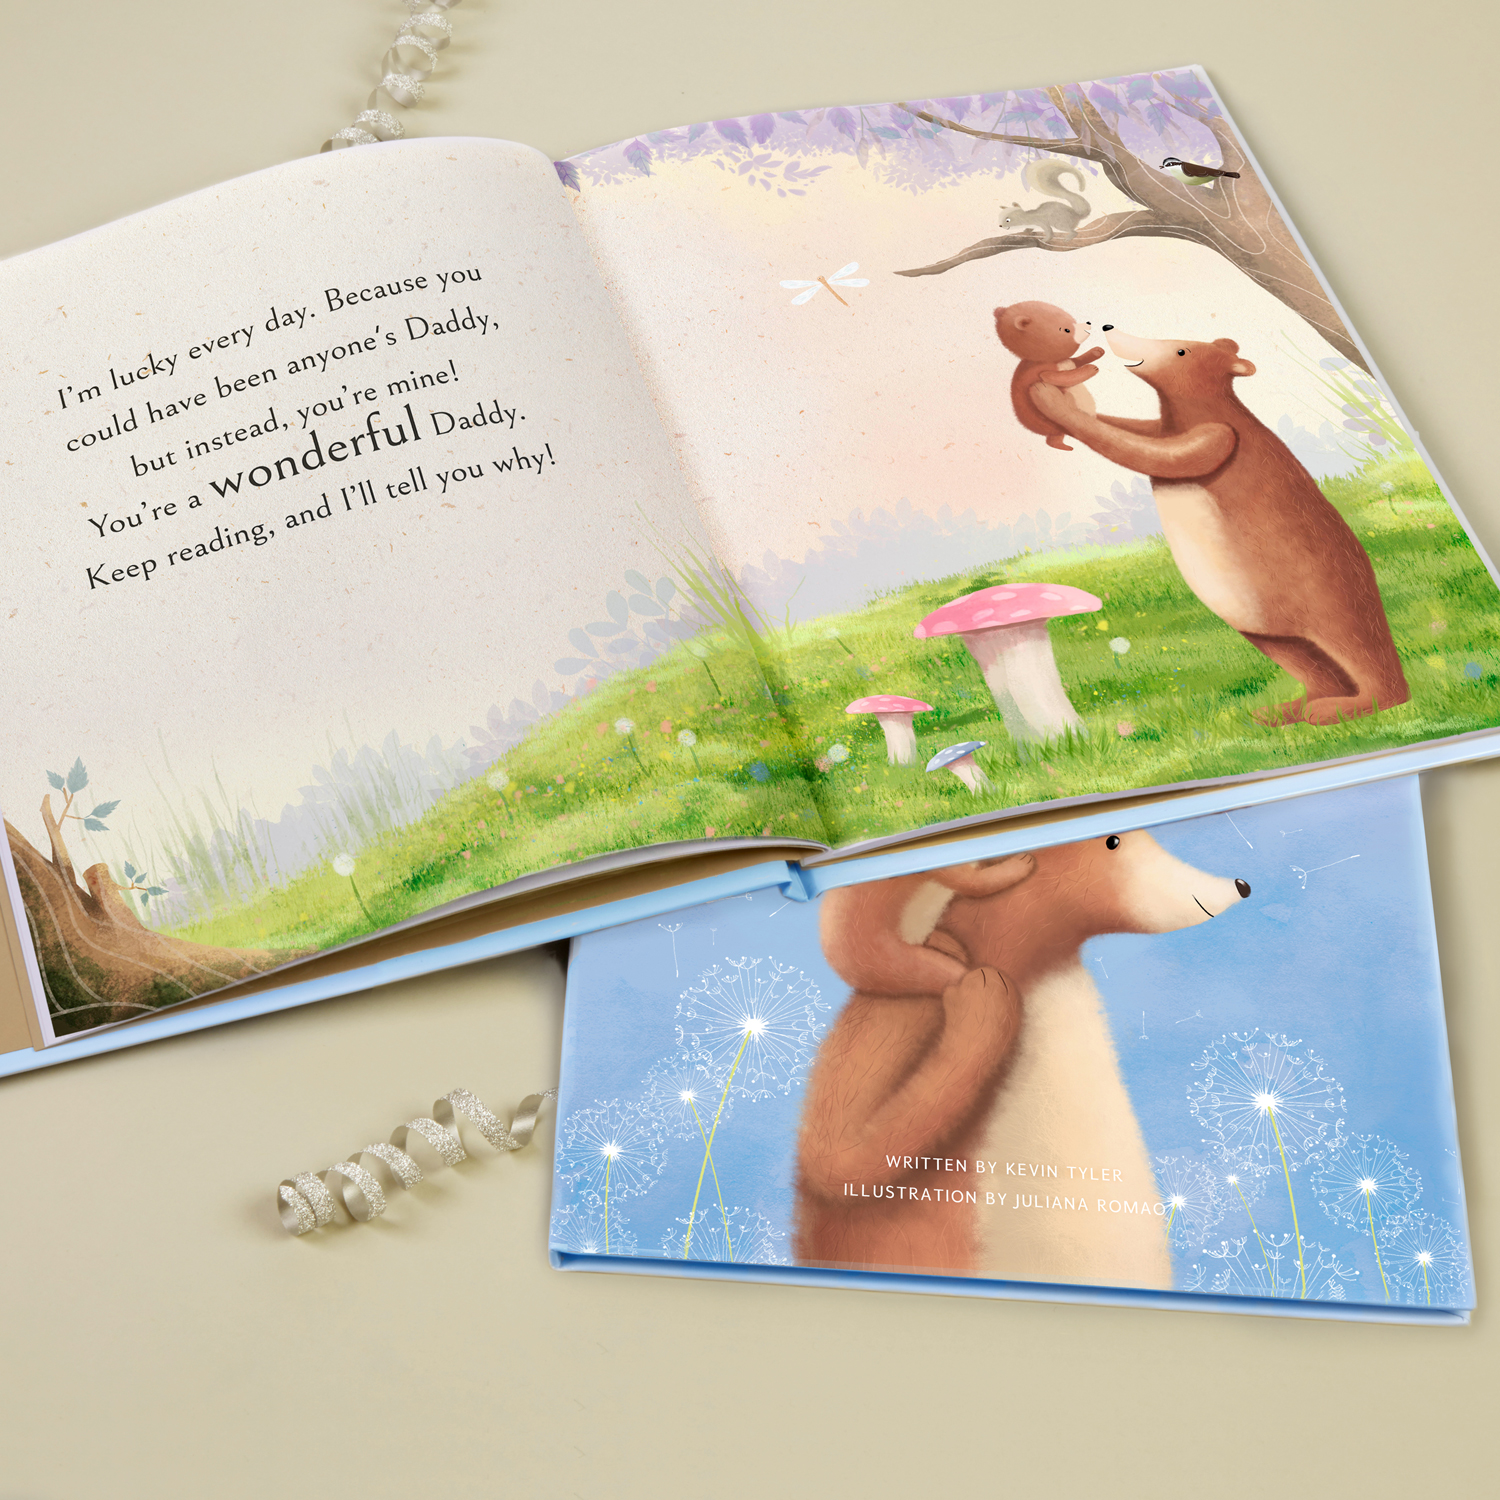 Personalise the Book with Father's Character Traits